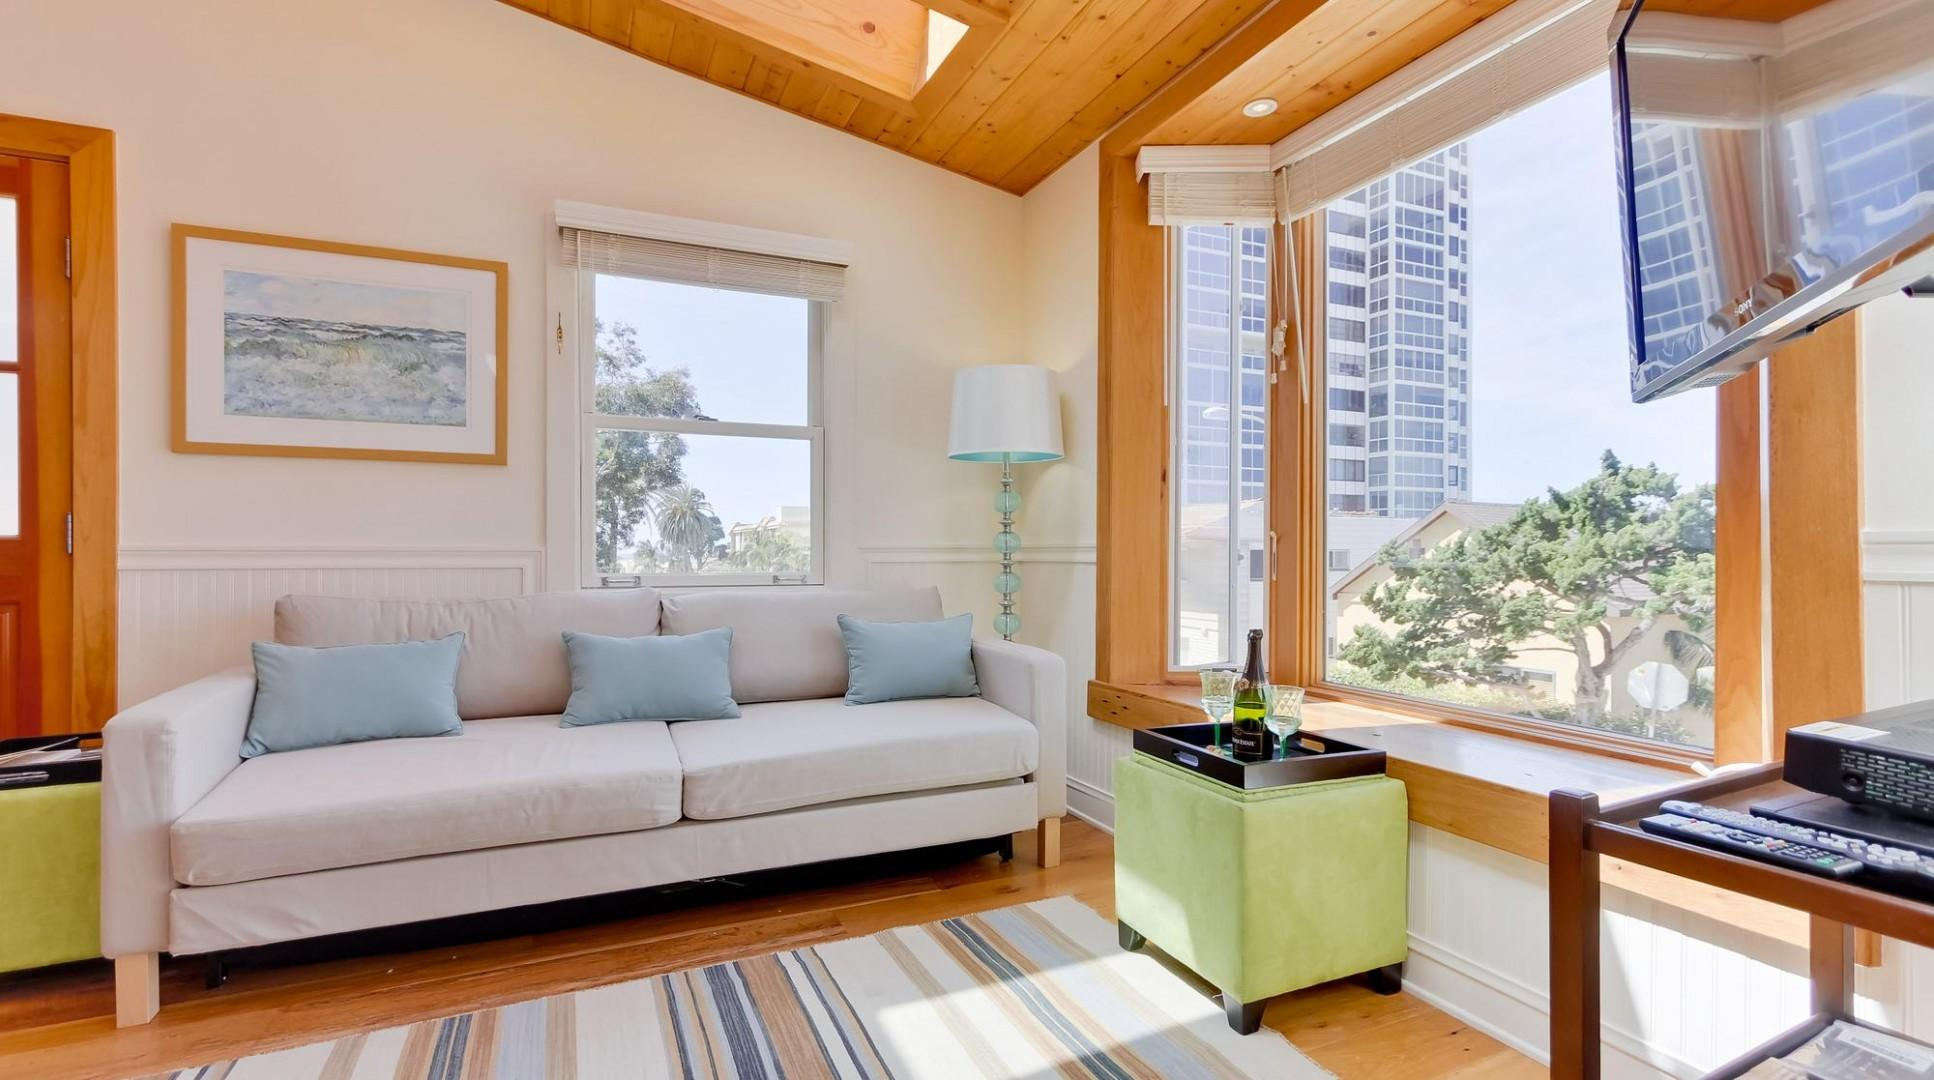 Living room with large windows to provide beautiful views